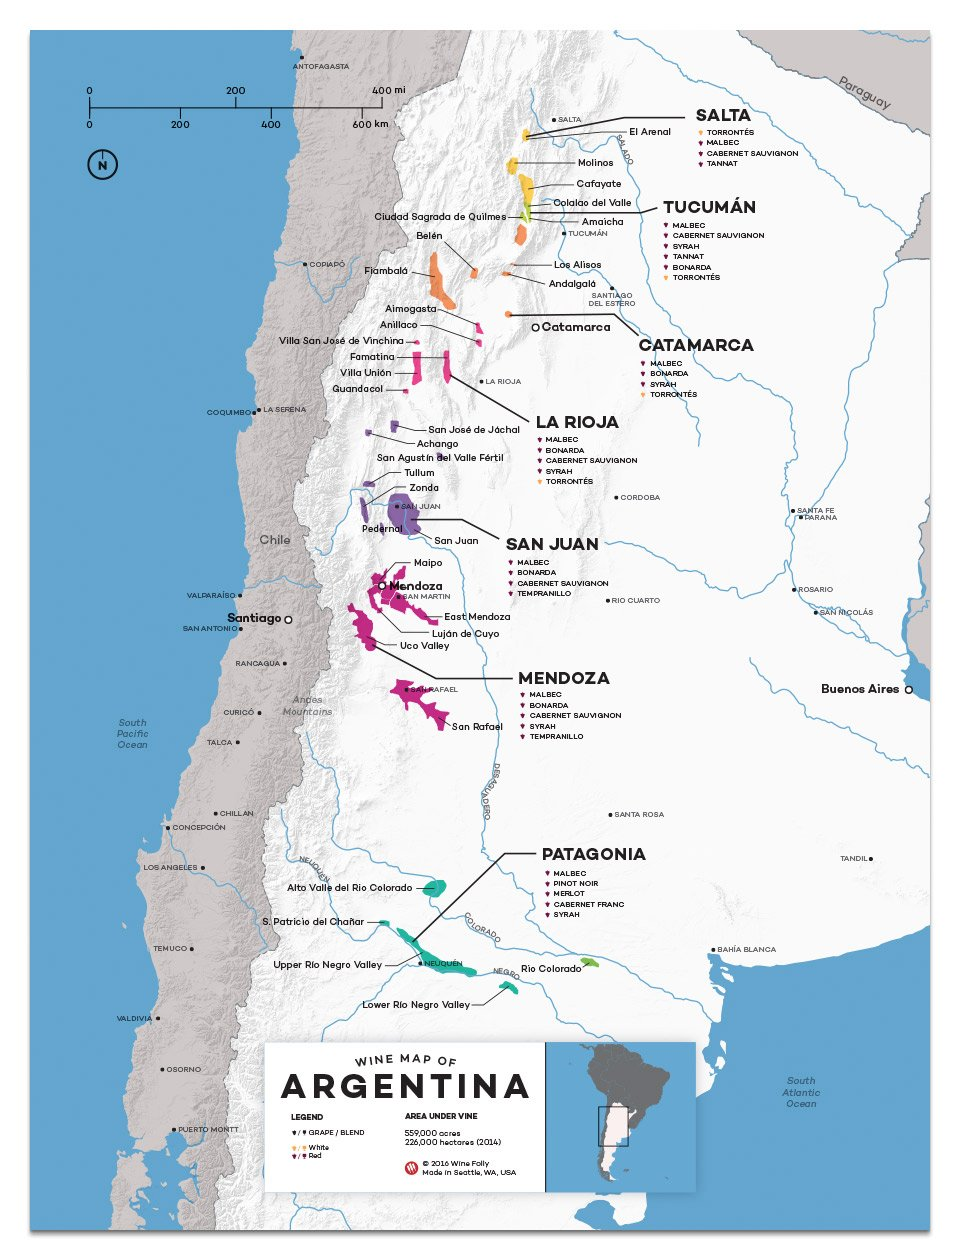 Argentina wine map wine tours wine tasting argentina wine map showing the many wine regions throughout this huge south american country gumiabroncs Choice Image